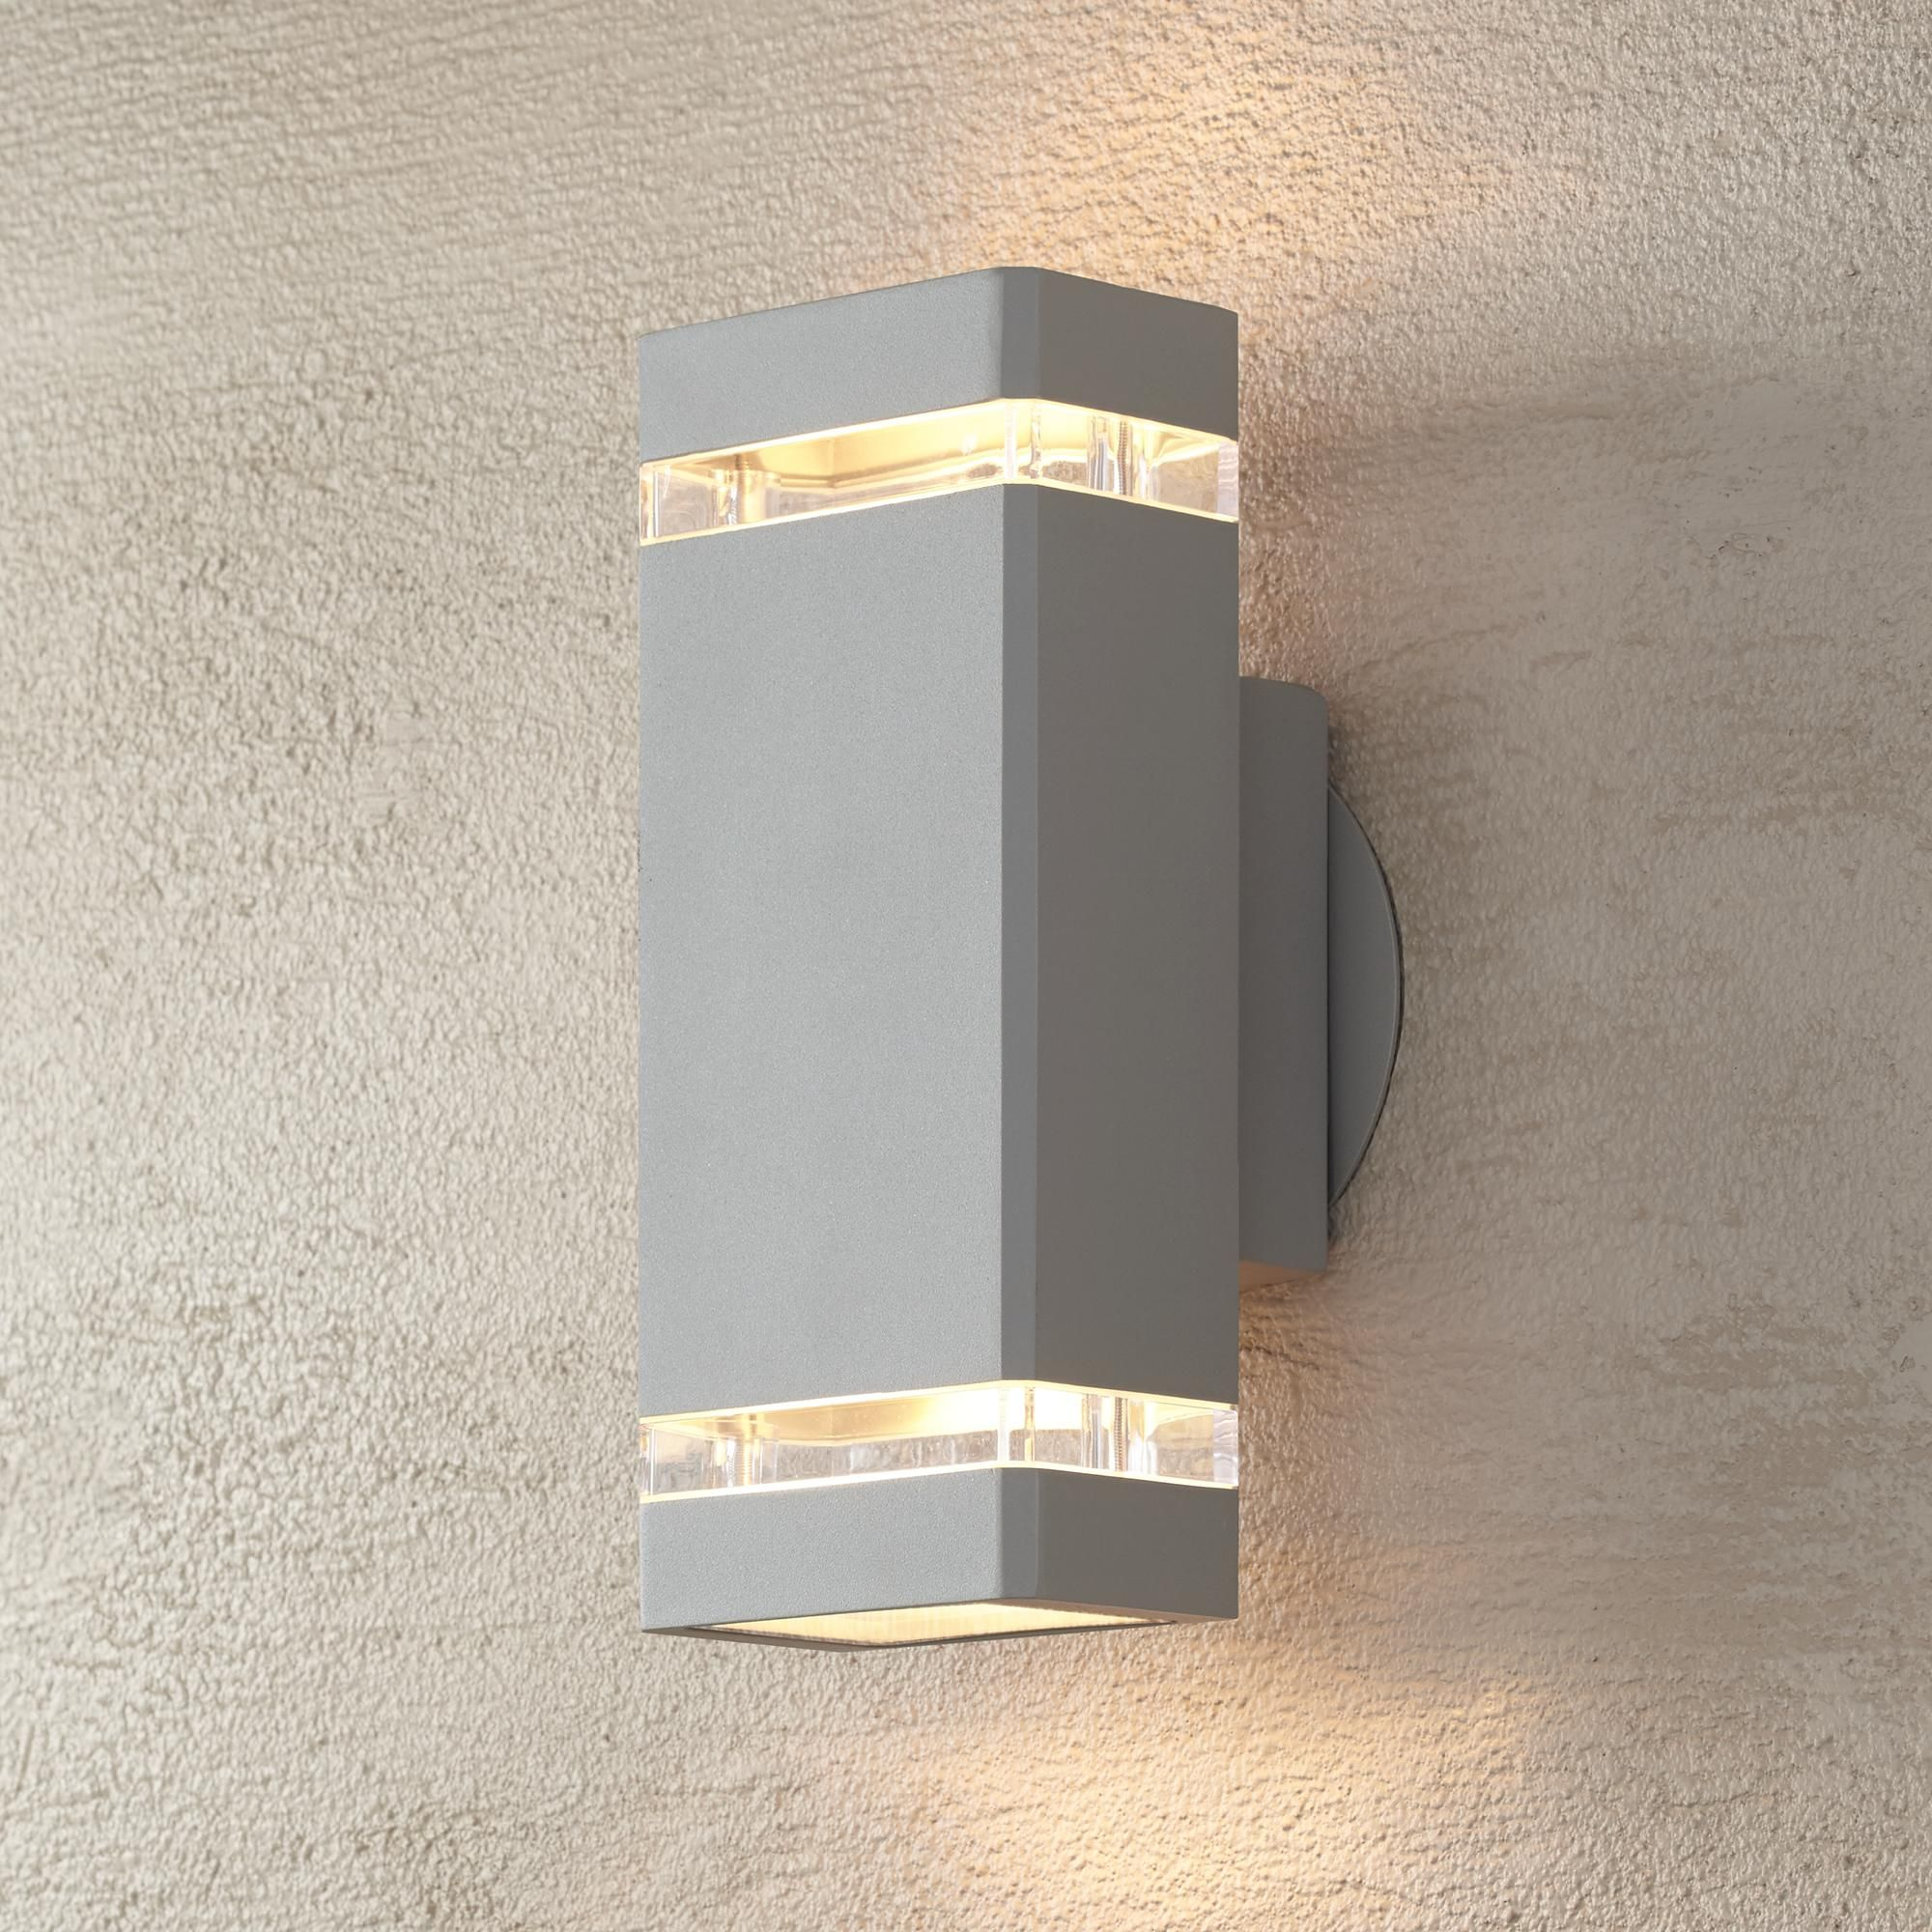 10 x Silver Brushed Chrome Outdoor Up Down Wall Light With Lamps IP65 Exterior